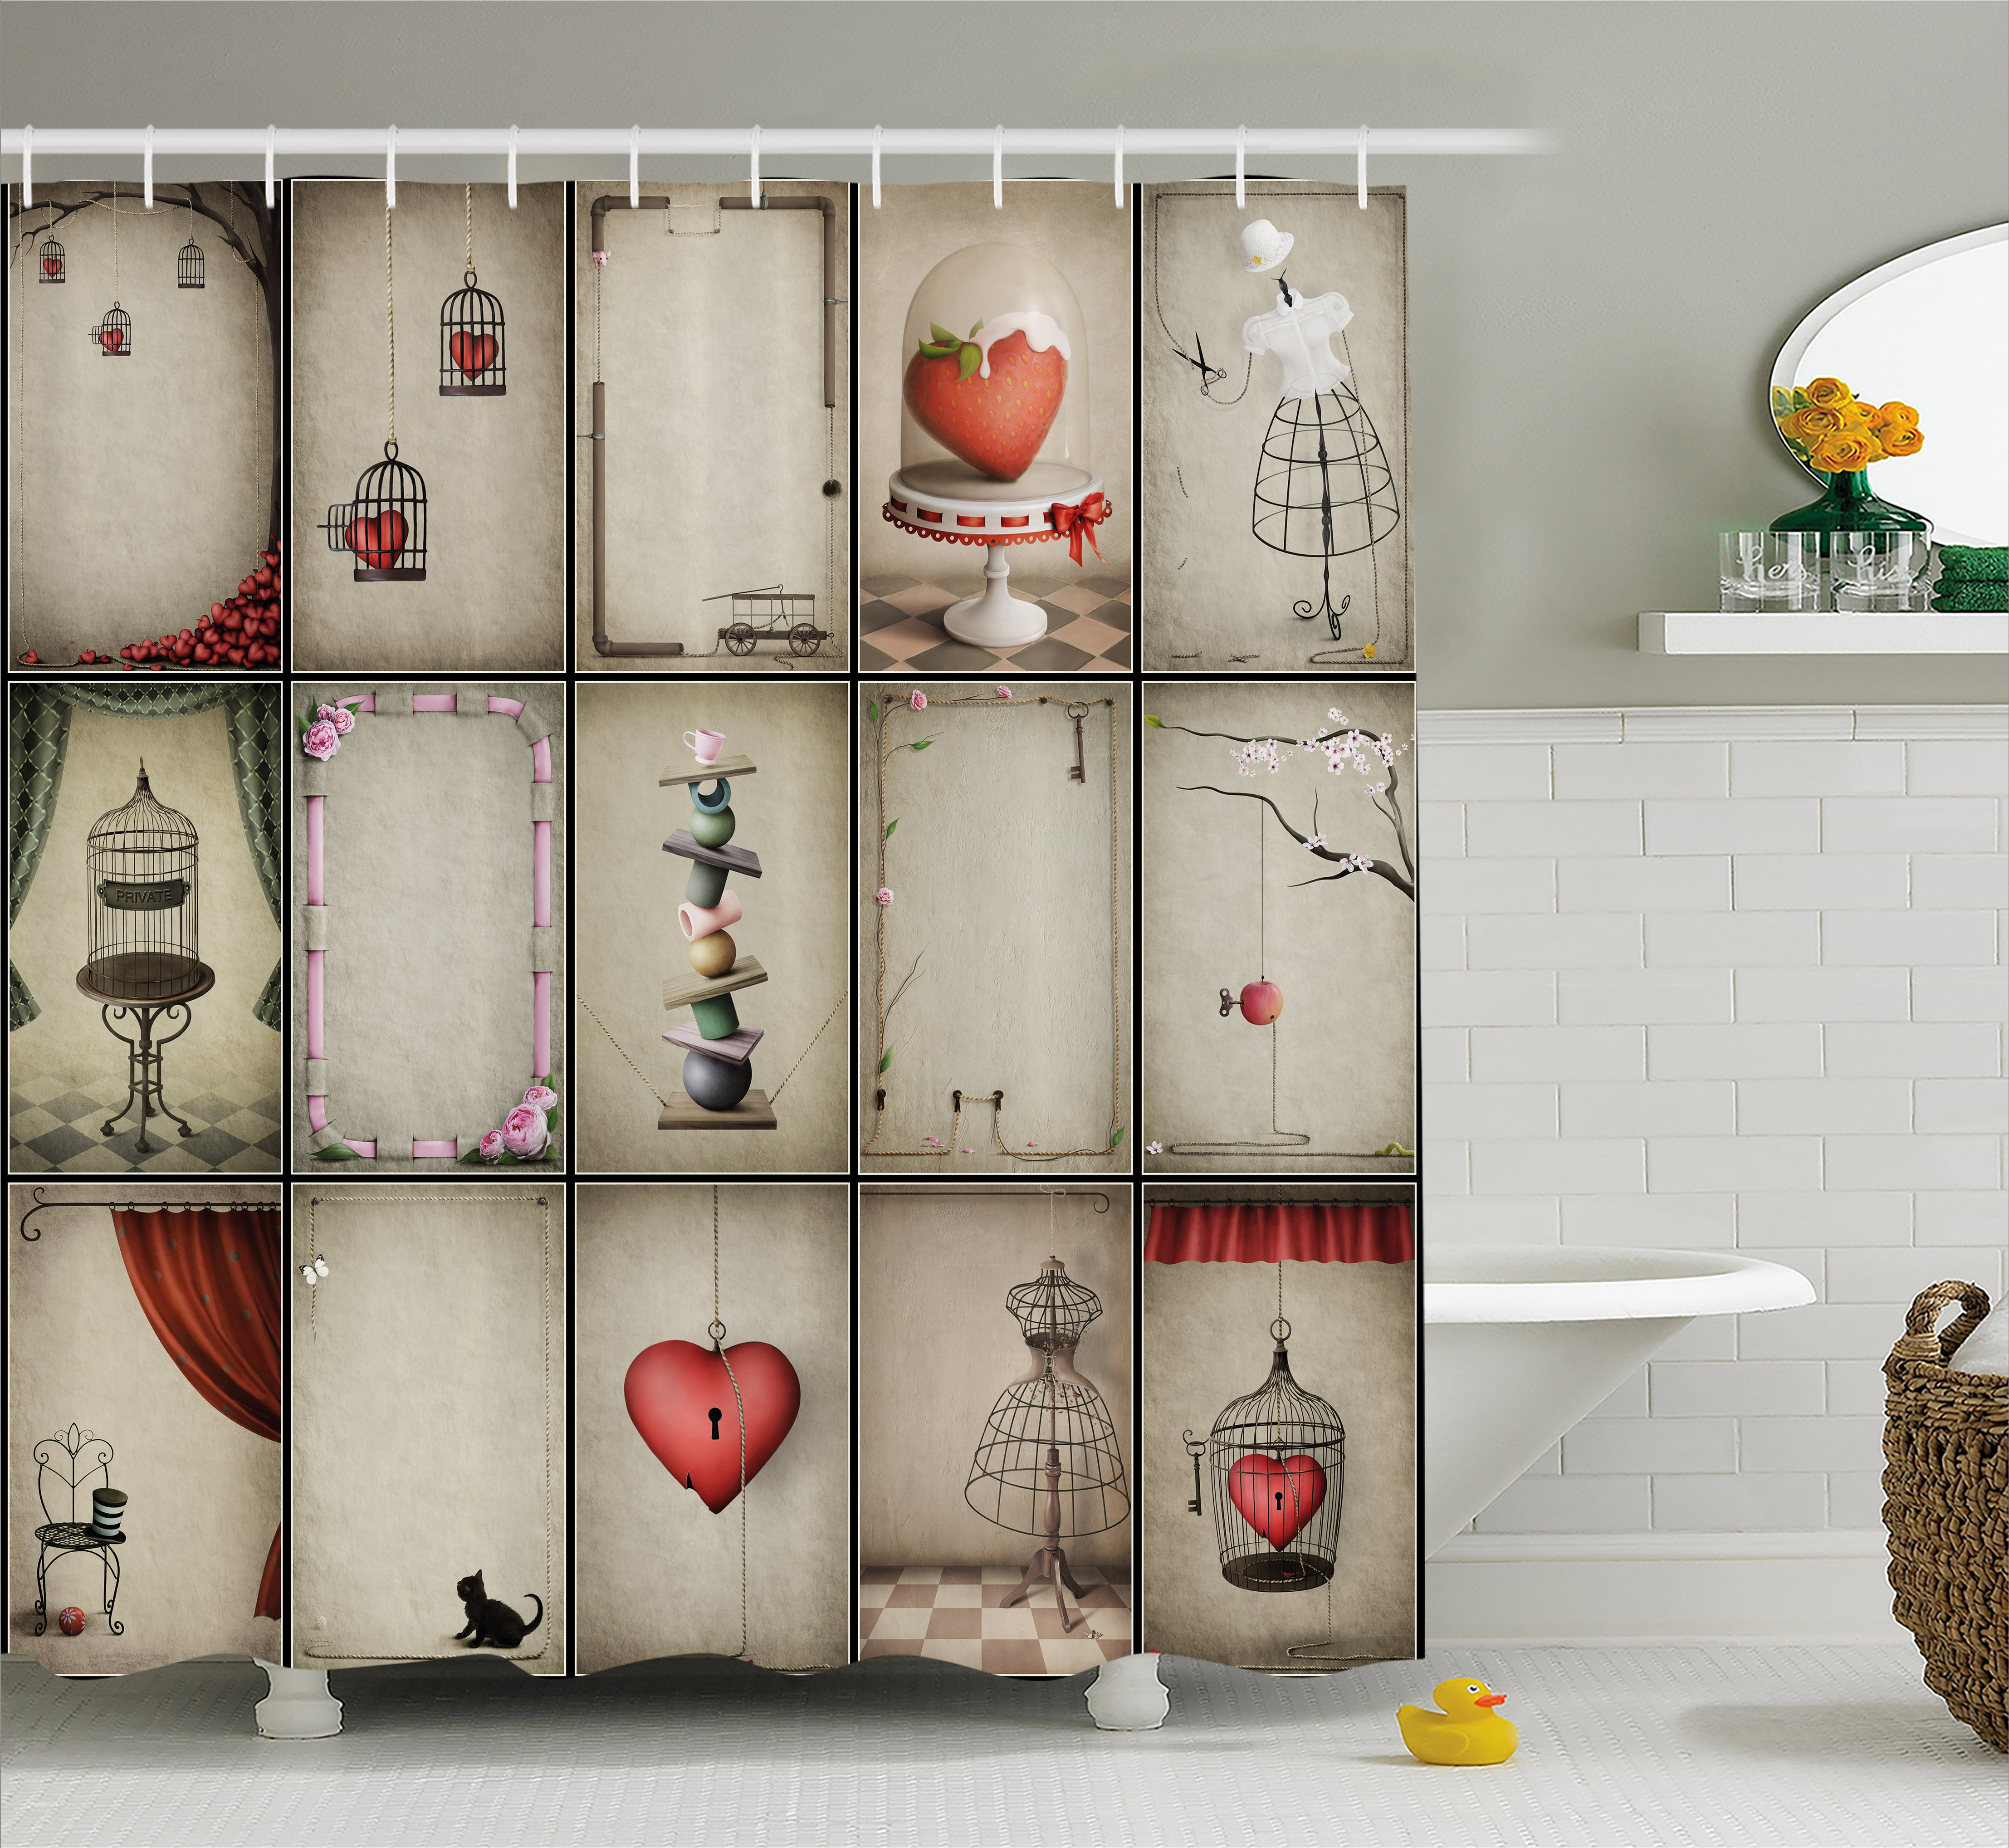 Vintage Shower Curtain, Valentines Day Inspired Hearts in Captivity Retro Elements Dresses and Cat, Fabric Bathroom Set with Hooks, 69W X 75L Inches Long, Tan Vermilion Pink, by Ambesonne